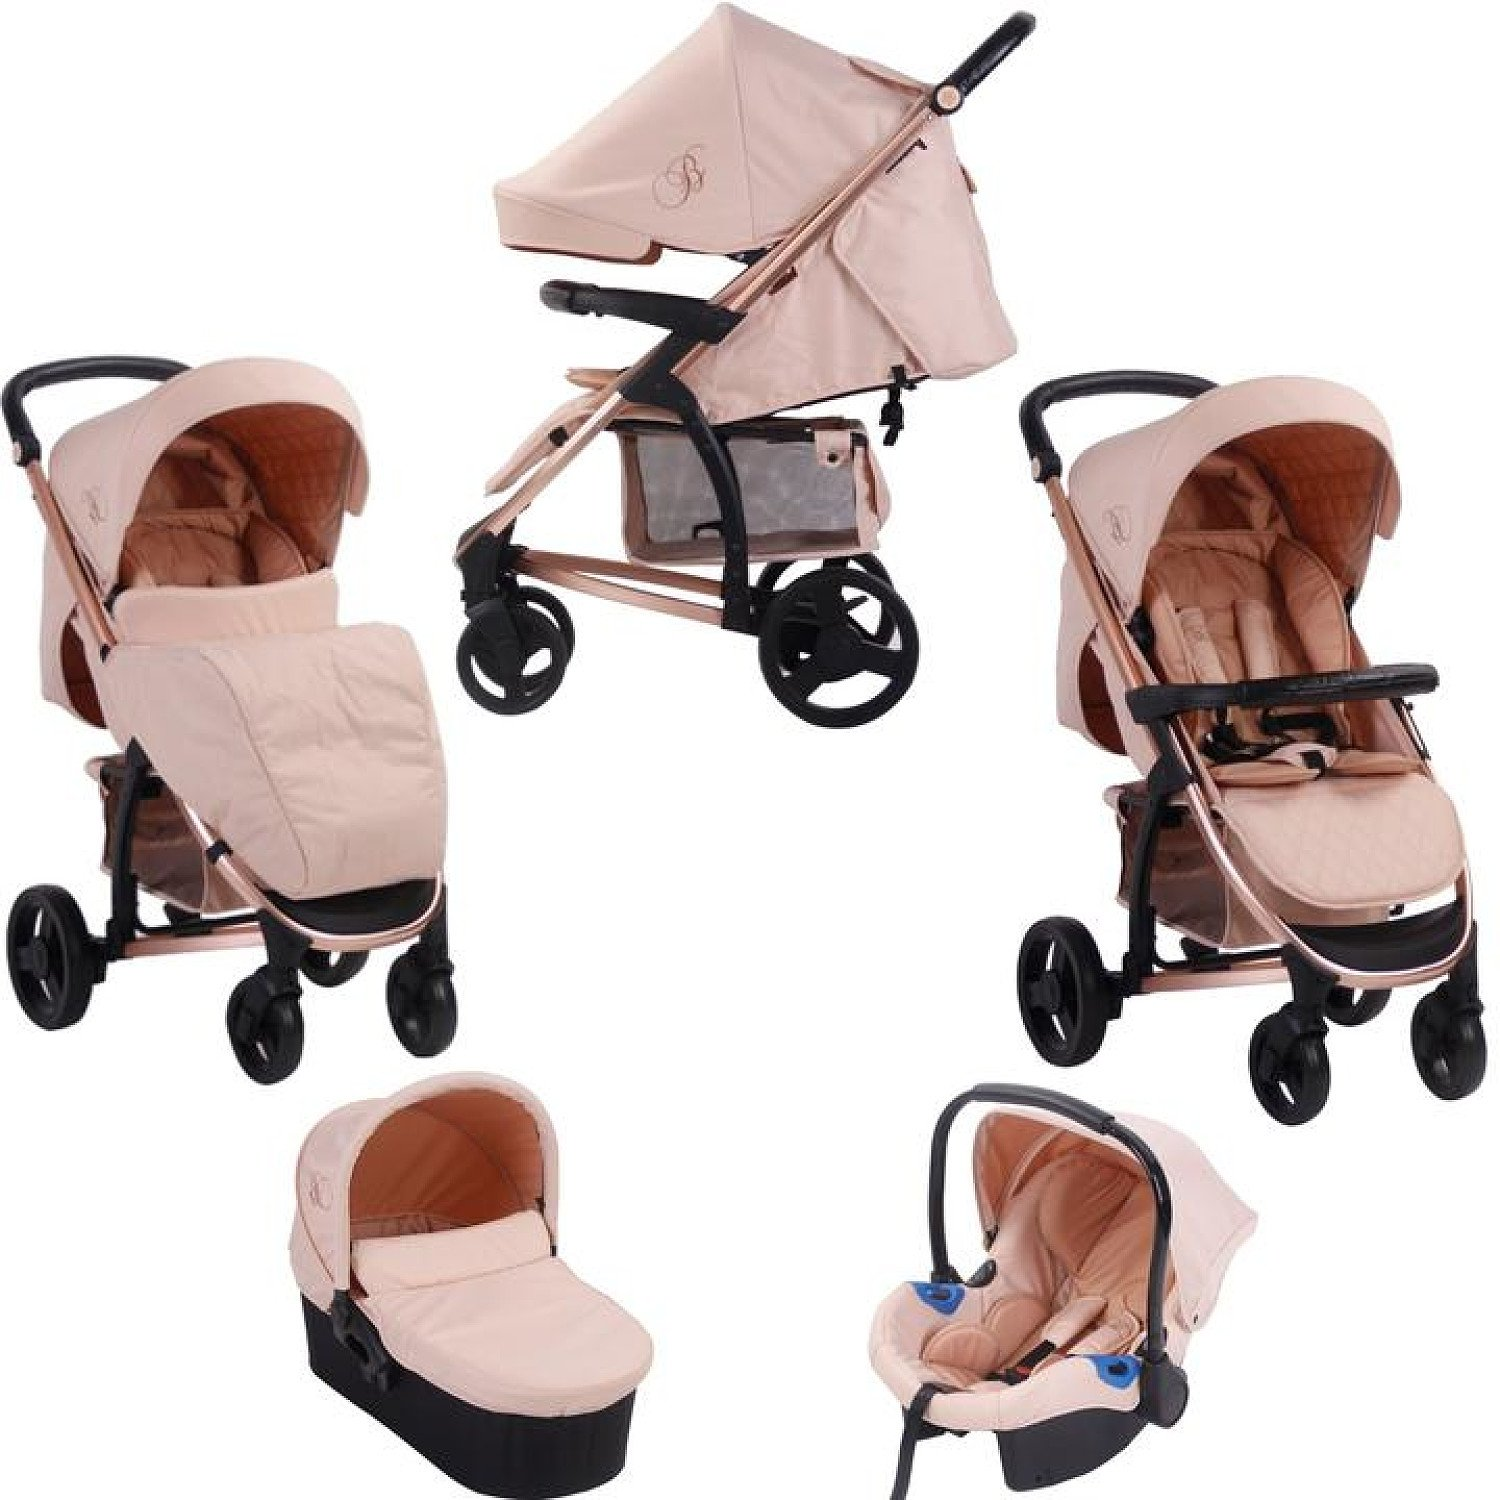 My Babiie MB200+ *Billie Faiers Collection* Travel System & Carrycot - Rose Gold & Blush Free Postag